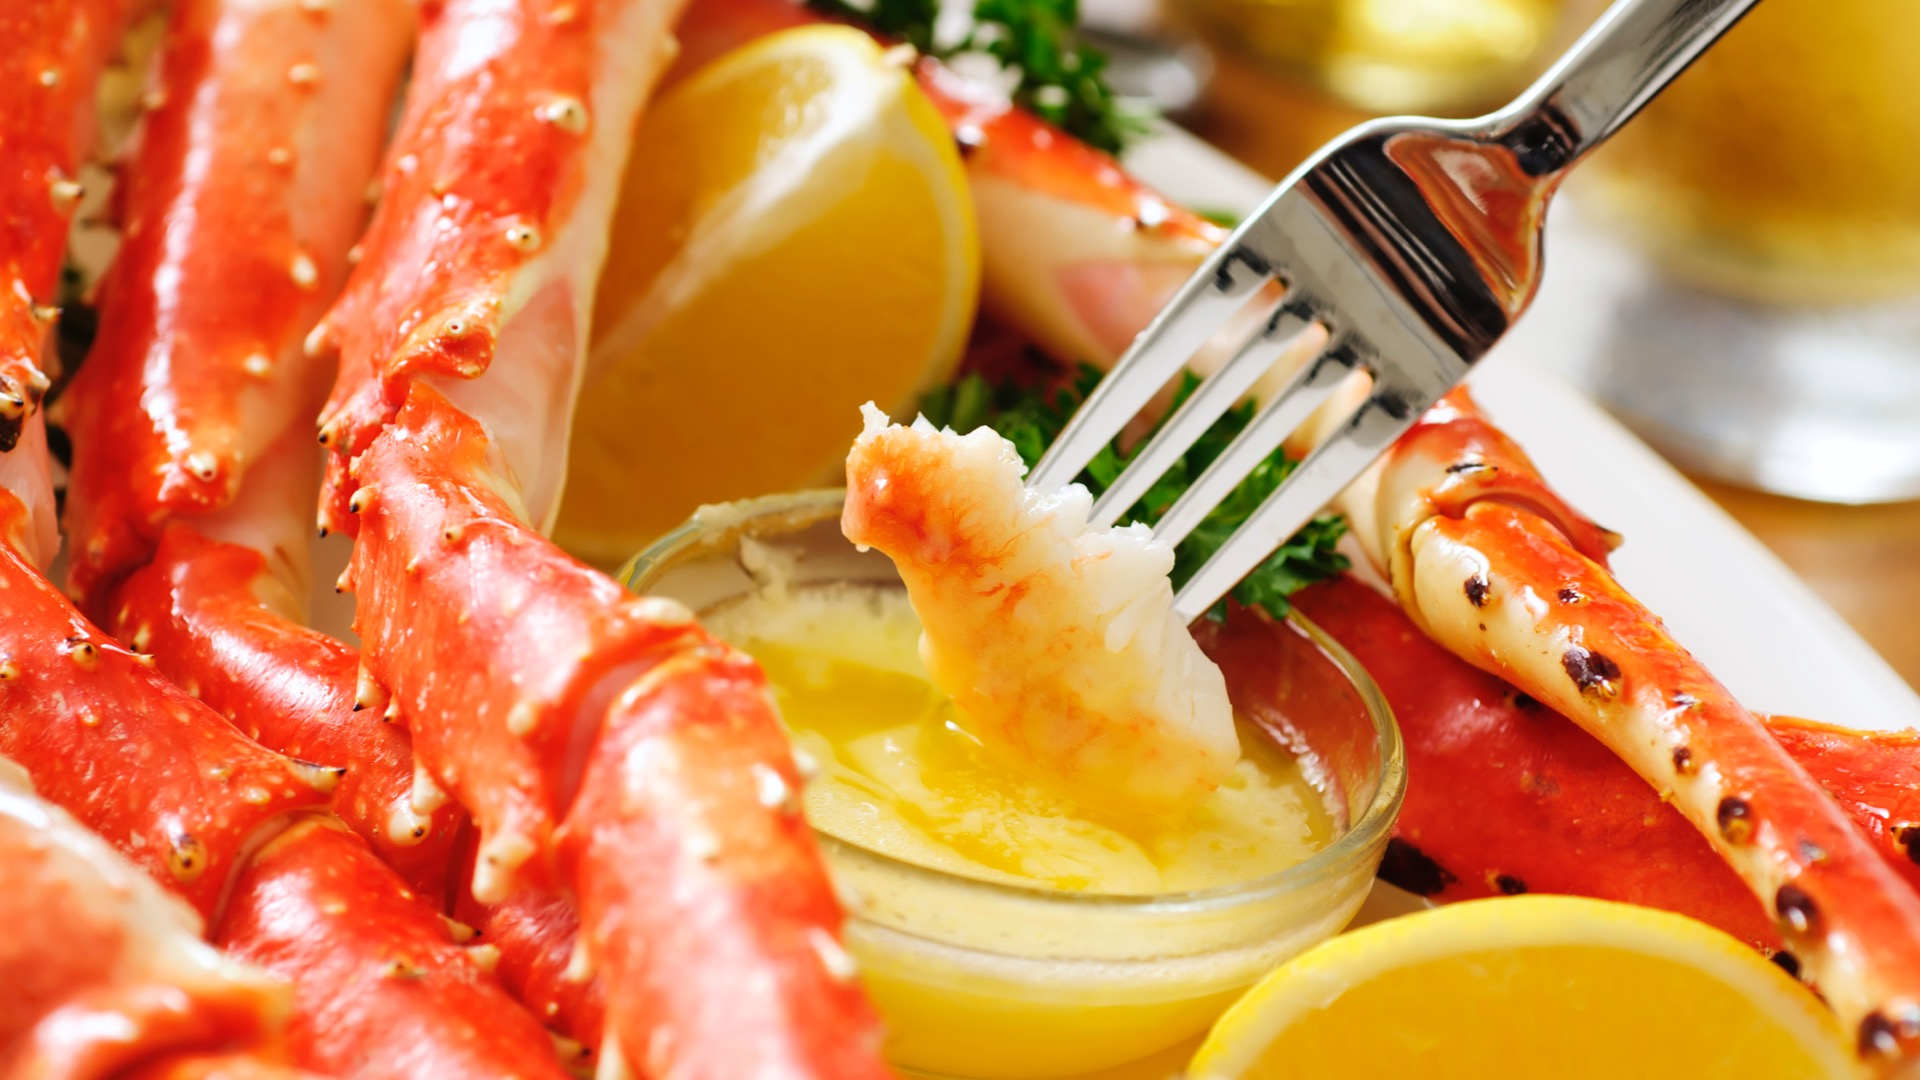 A fork with a piece of crab dipping into melted butter.